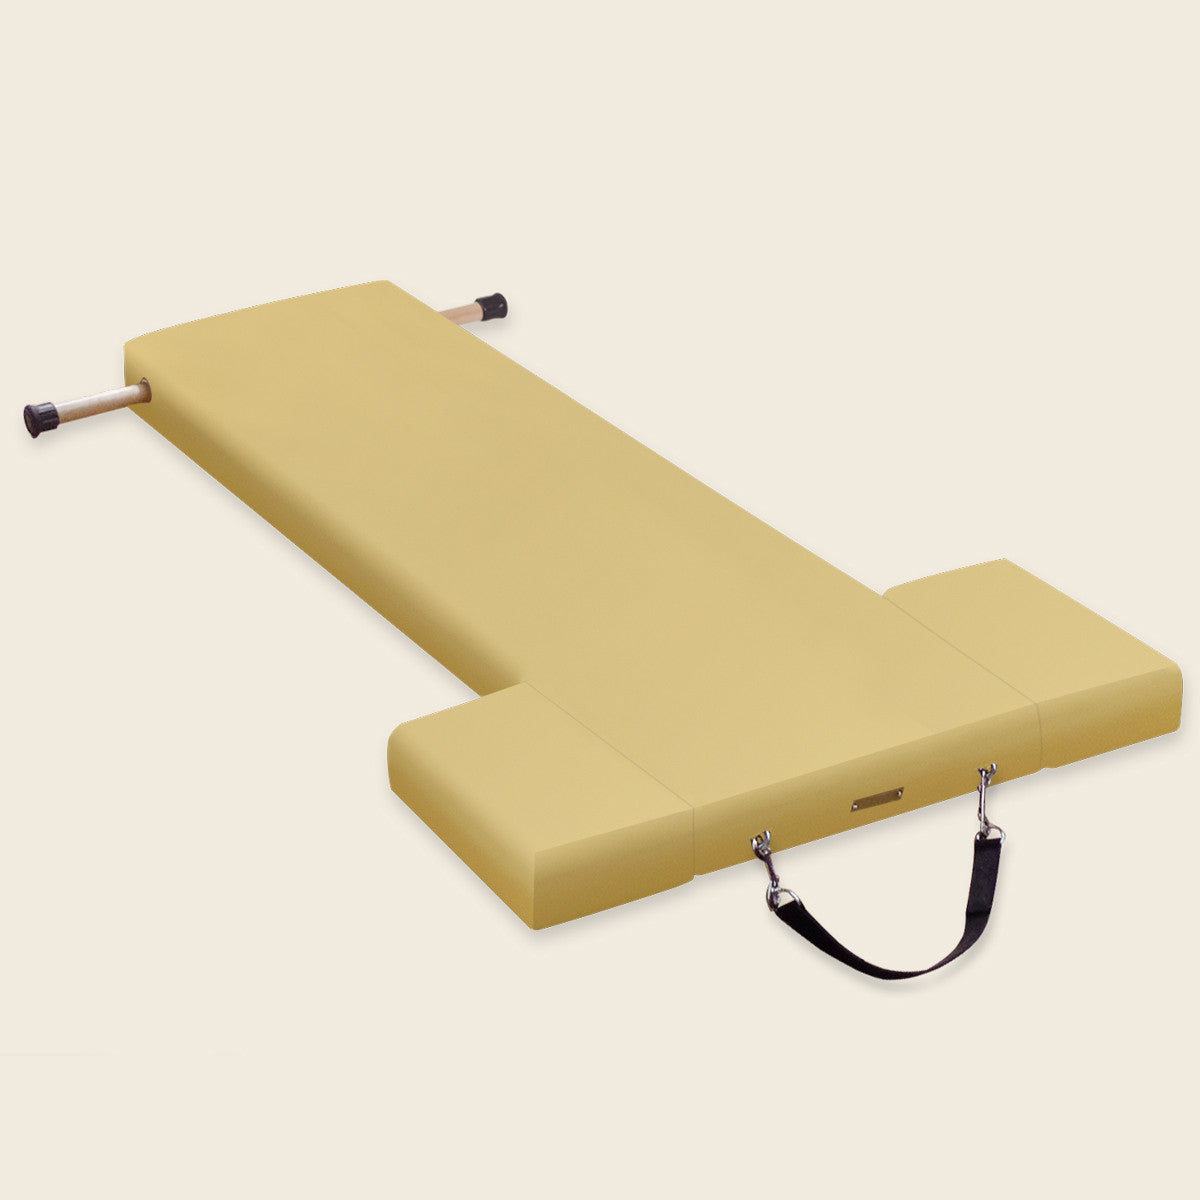 GRATZ PILATES HIGH RIGID MAT